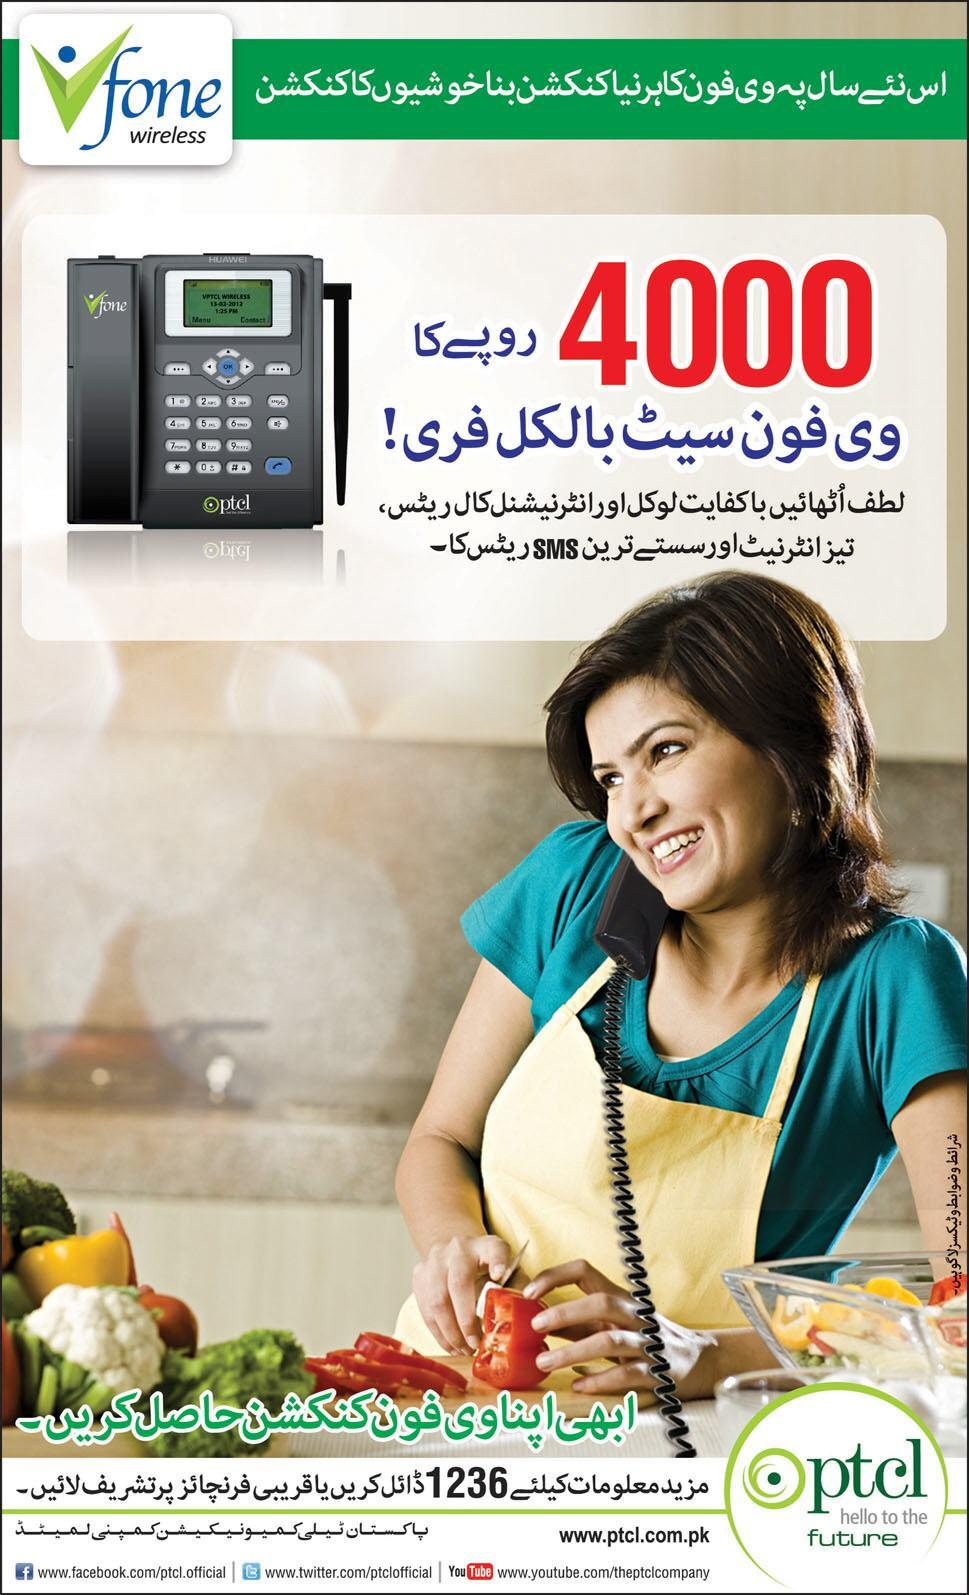 Free Vfone Set Happy New Year Promotion Offer by PTCL